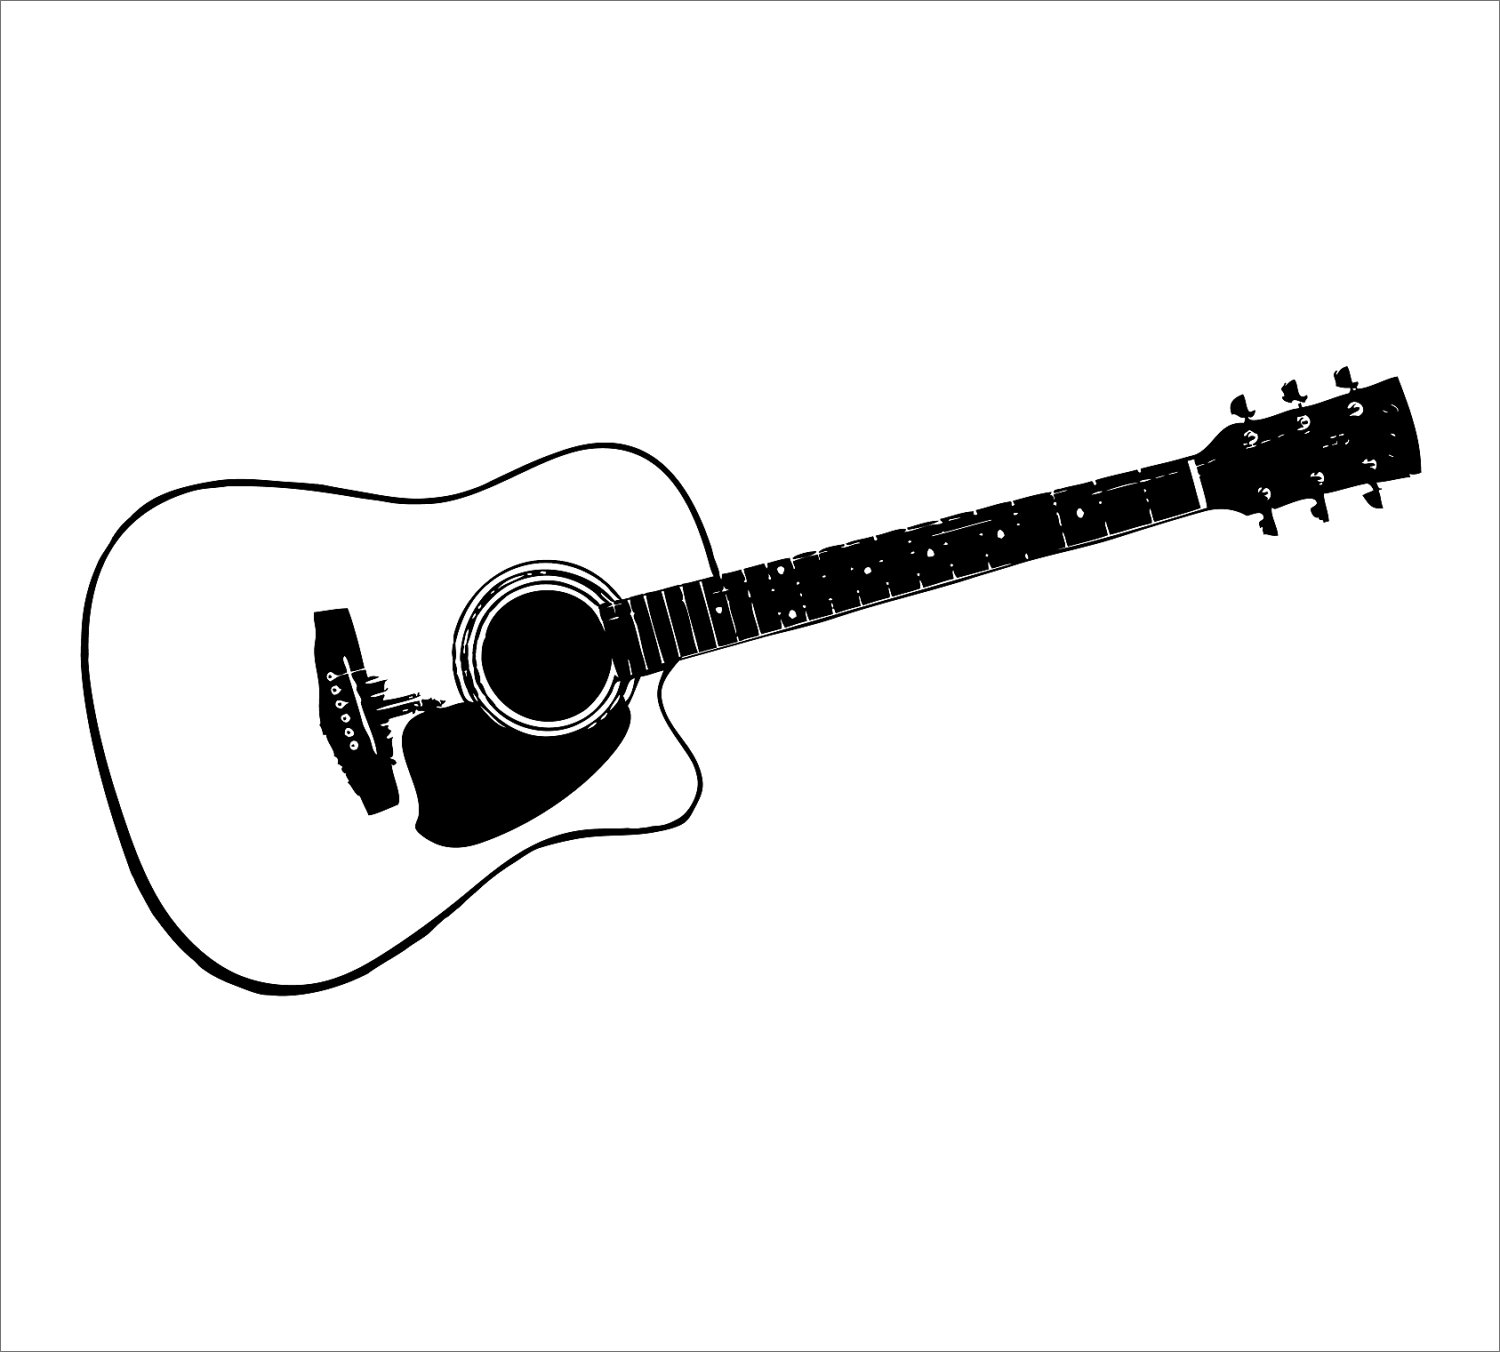 Clip Art Guitar Clipart Black And White guitar black and white clipart kid use these free images for your websites art projects reports and